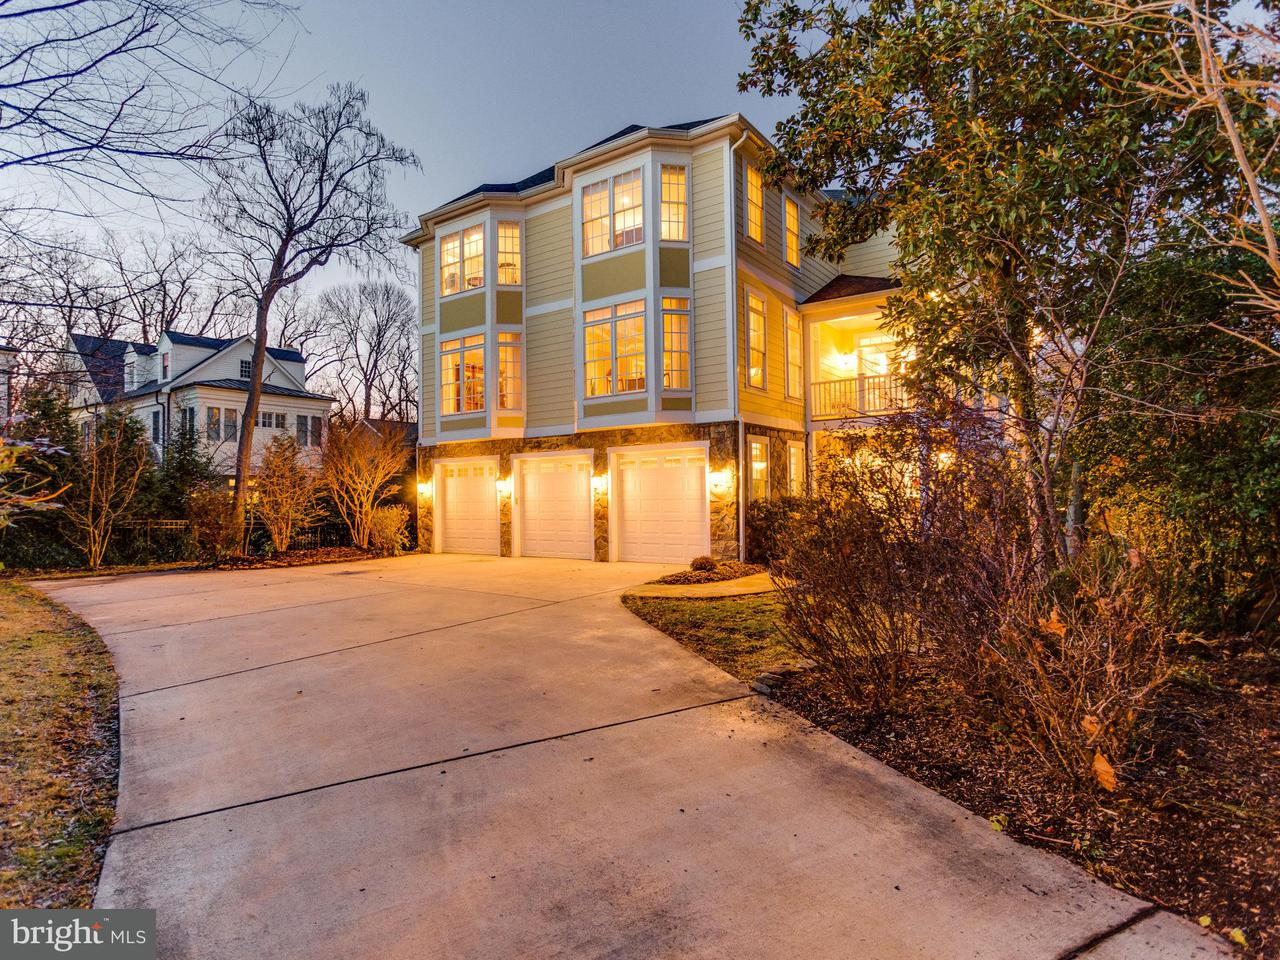 Single Family Home for Sale at 1717 22nd St N 1717 22nd St N Arlington, Virginia 22209 United States